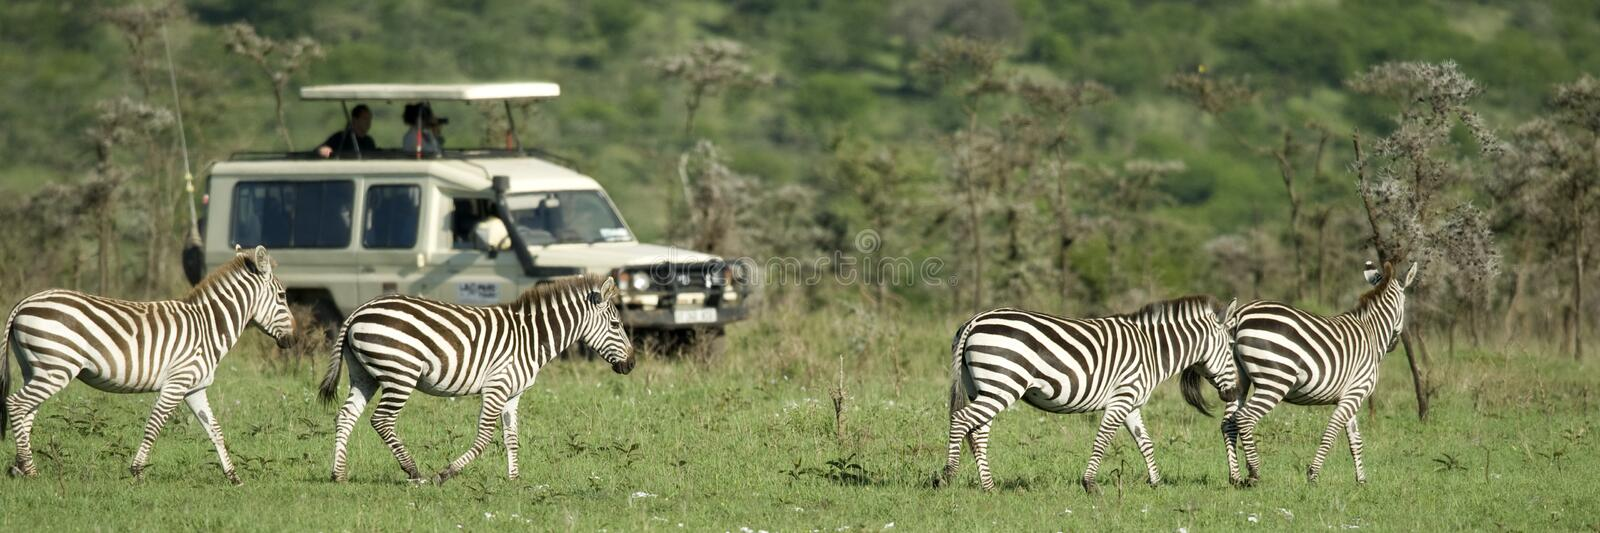 Zebras passing in front of 4X4 stock photo